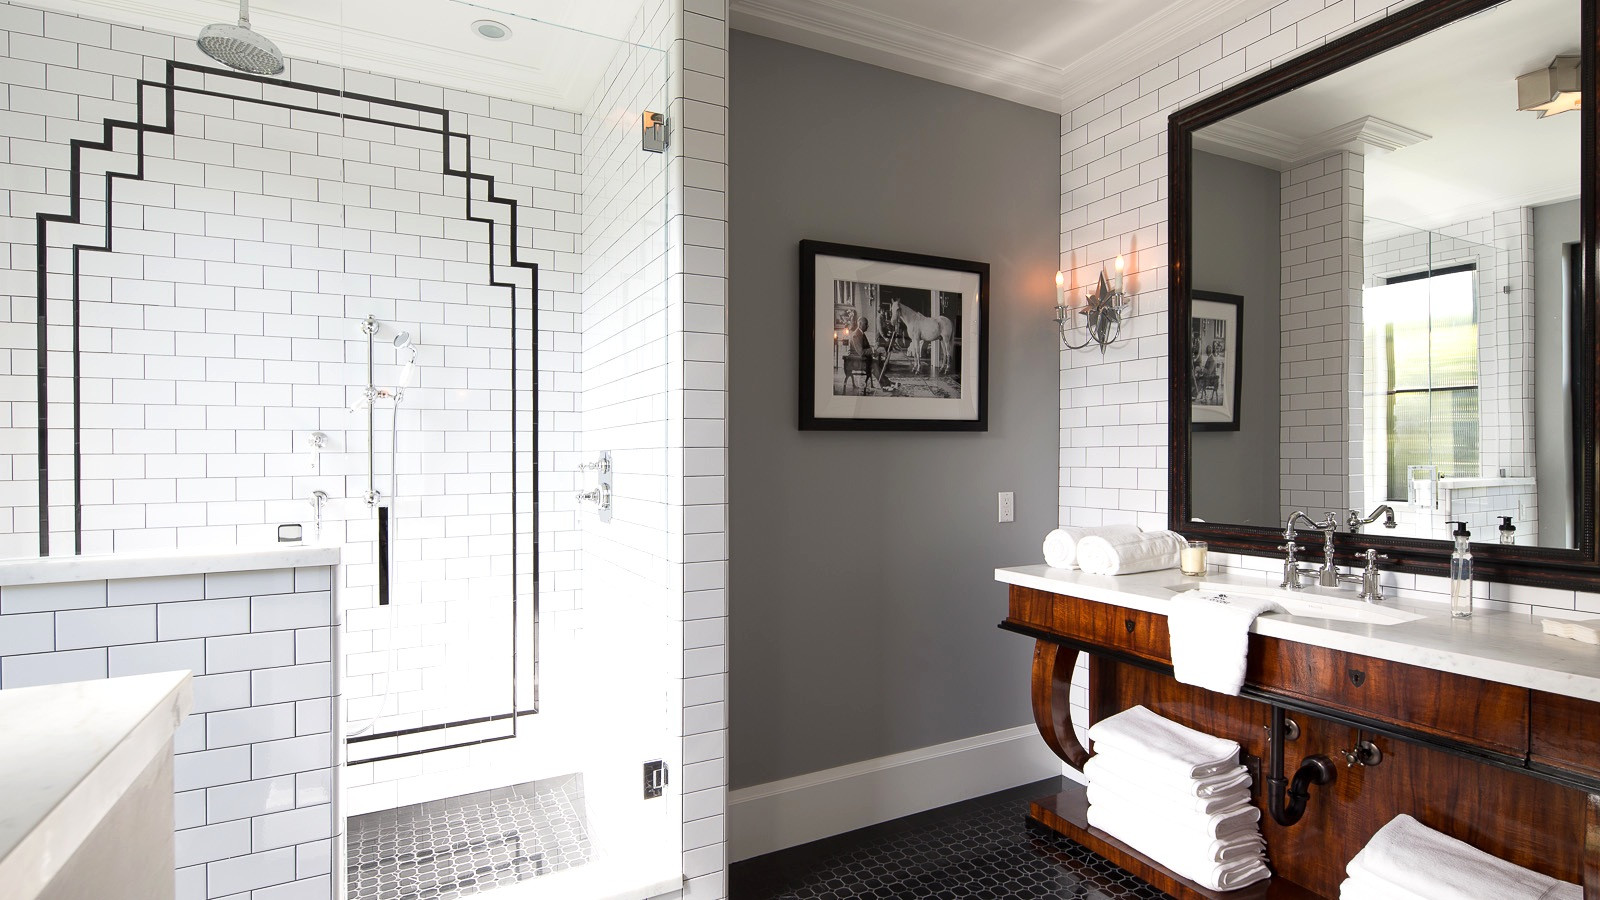 Best ideas about Art Deco Bathroom . Save or Pin 30 great pictures and ideas art nouveau bathroom tiles Now.